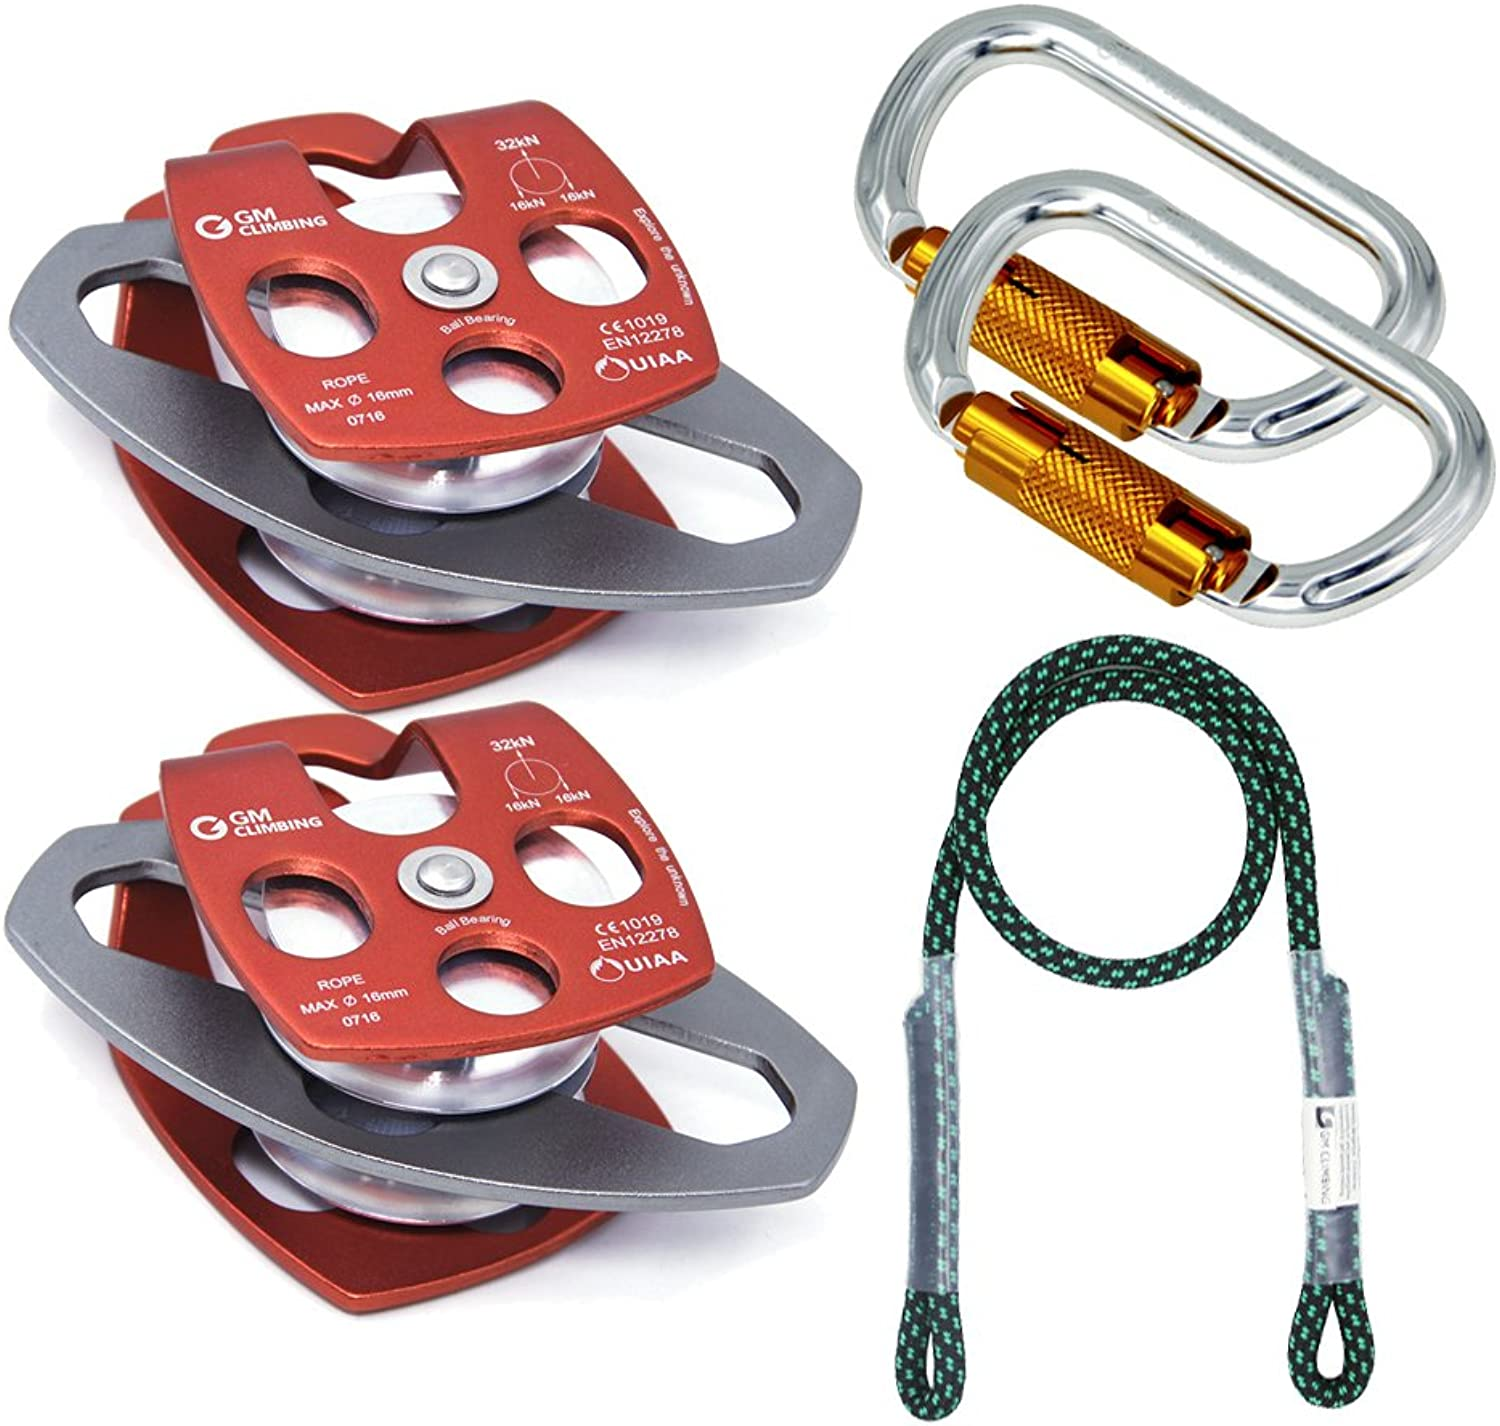 GM CLIMBING Hardware Kit for 5 1 Mechanical Advantage Pulley   Hauling   Dragging System Block and Tackle